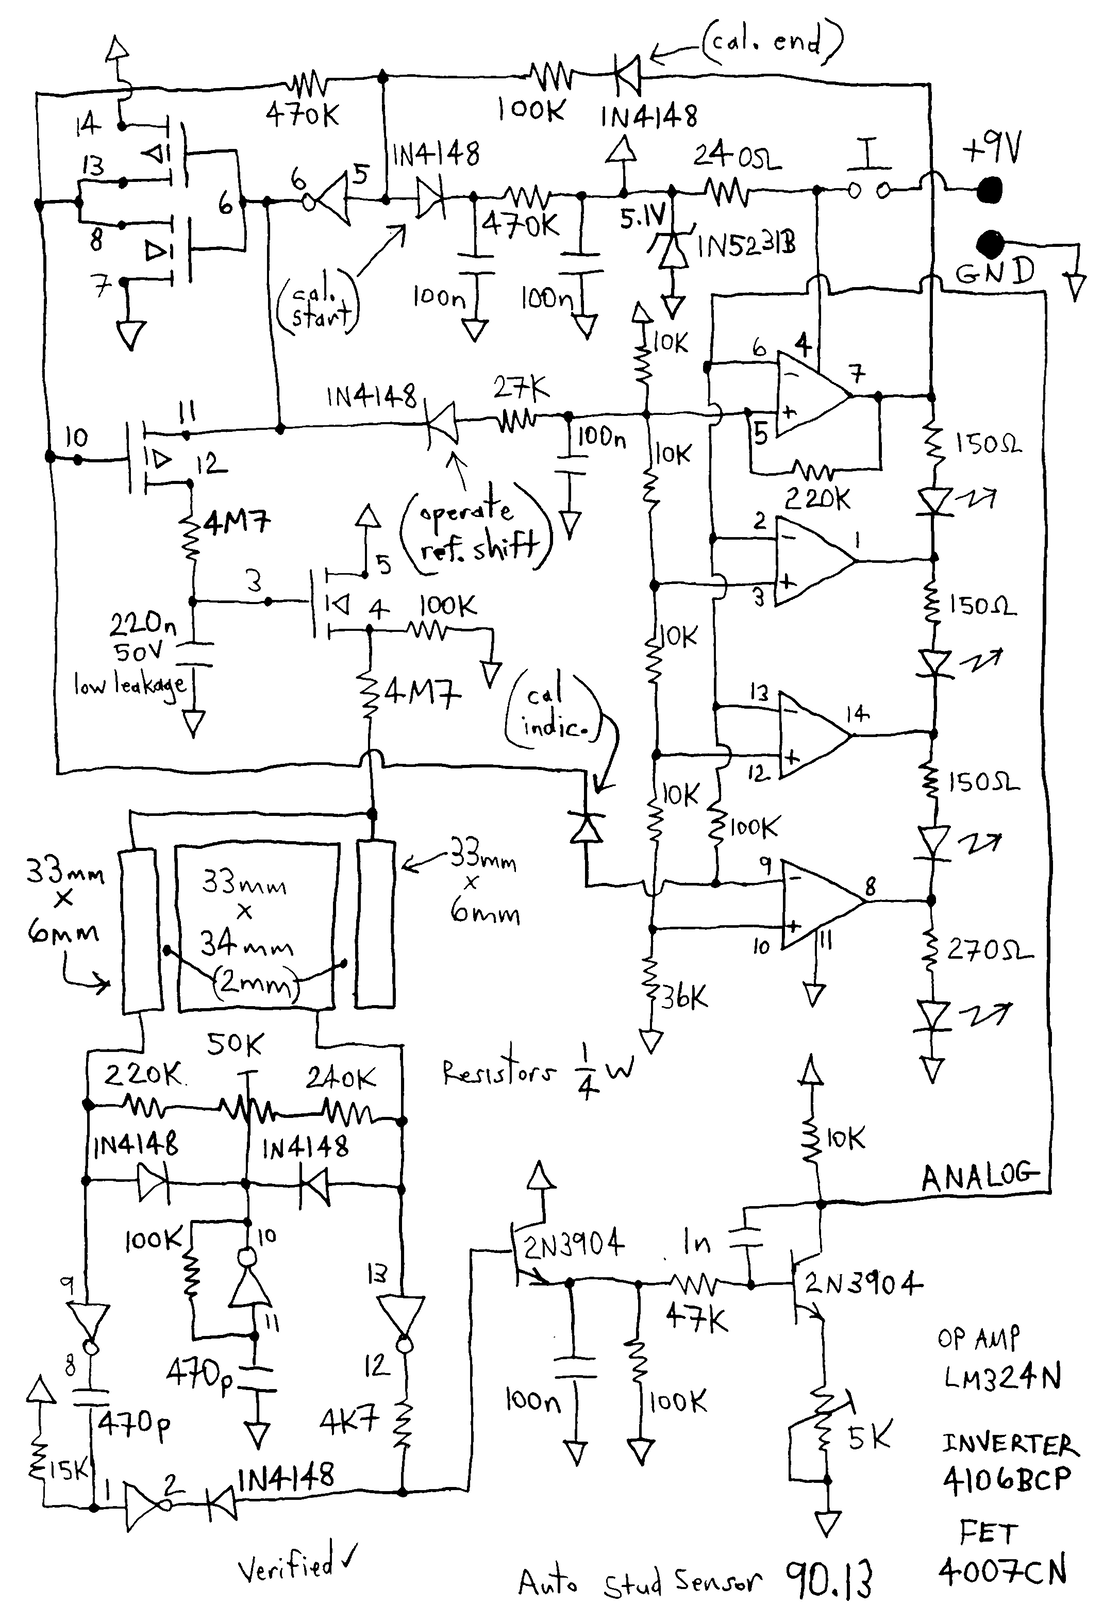 Lpg ecu wiring diagram electric circuit drawing at getdrawings free for personal use